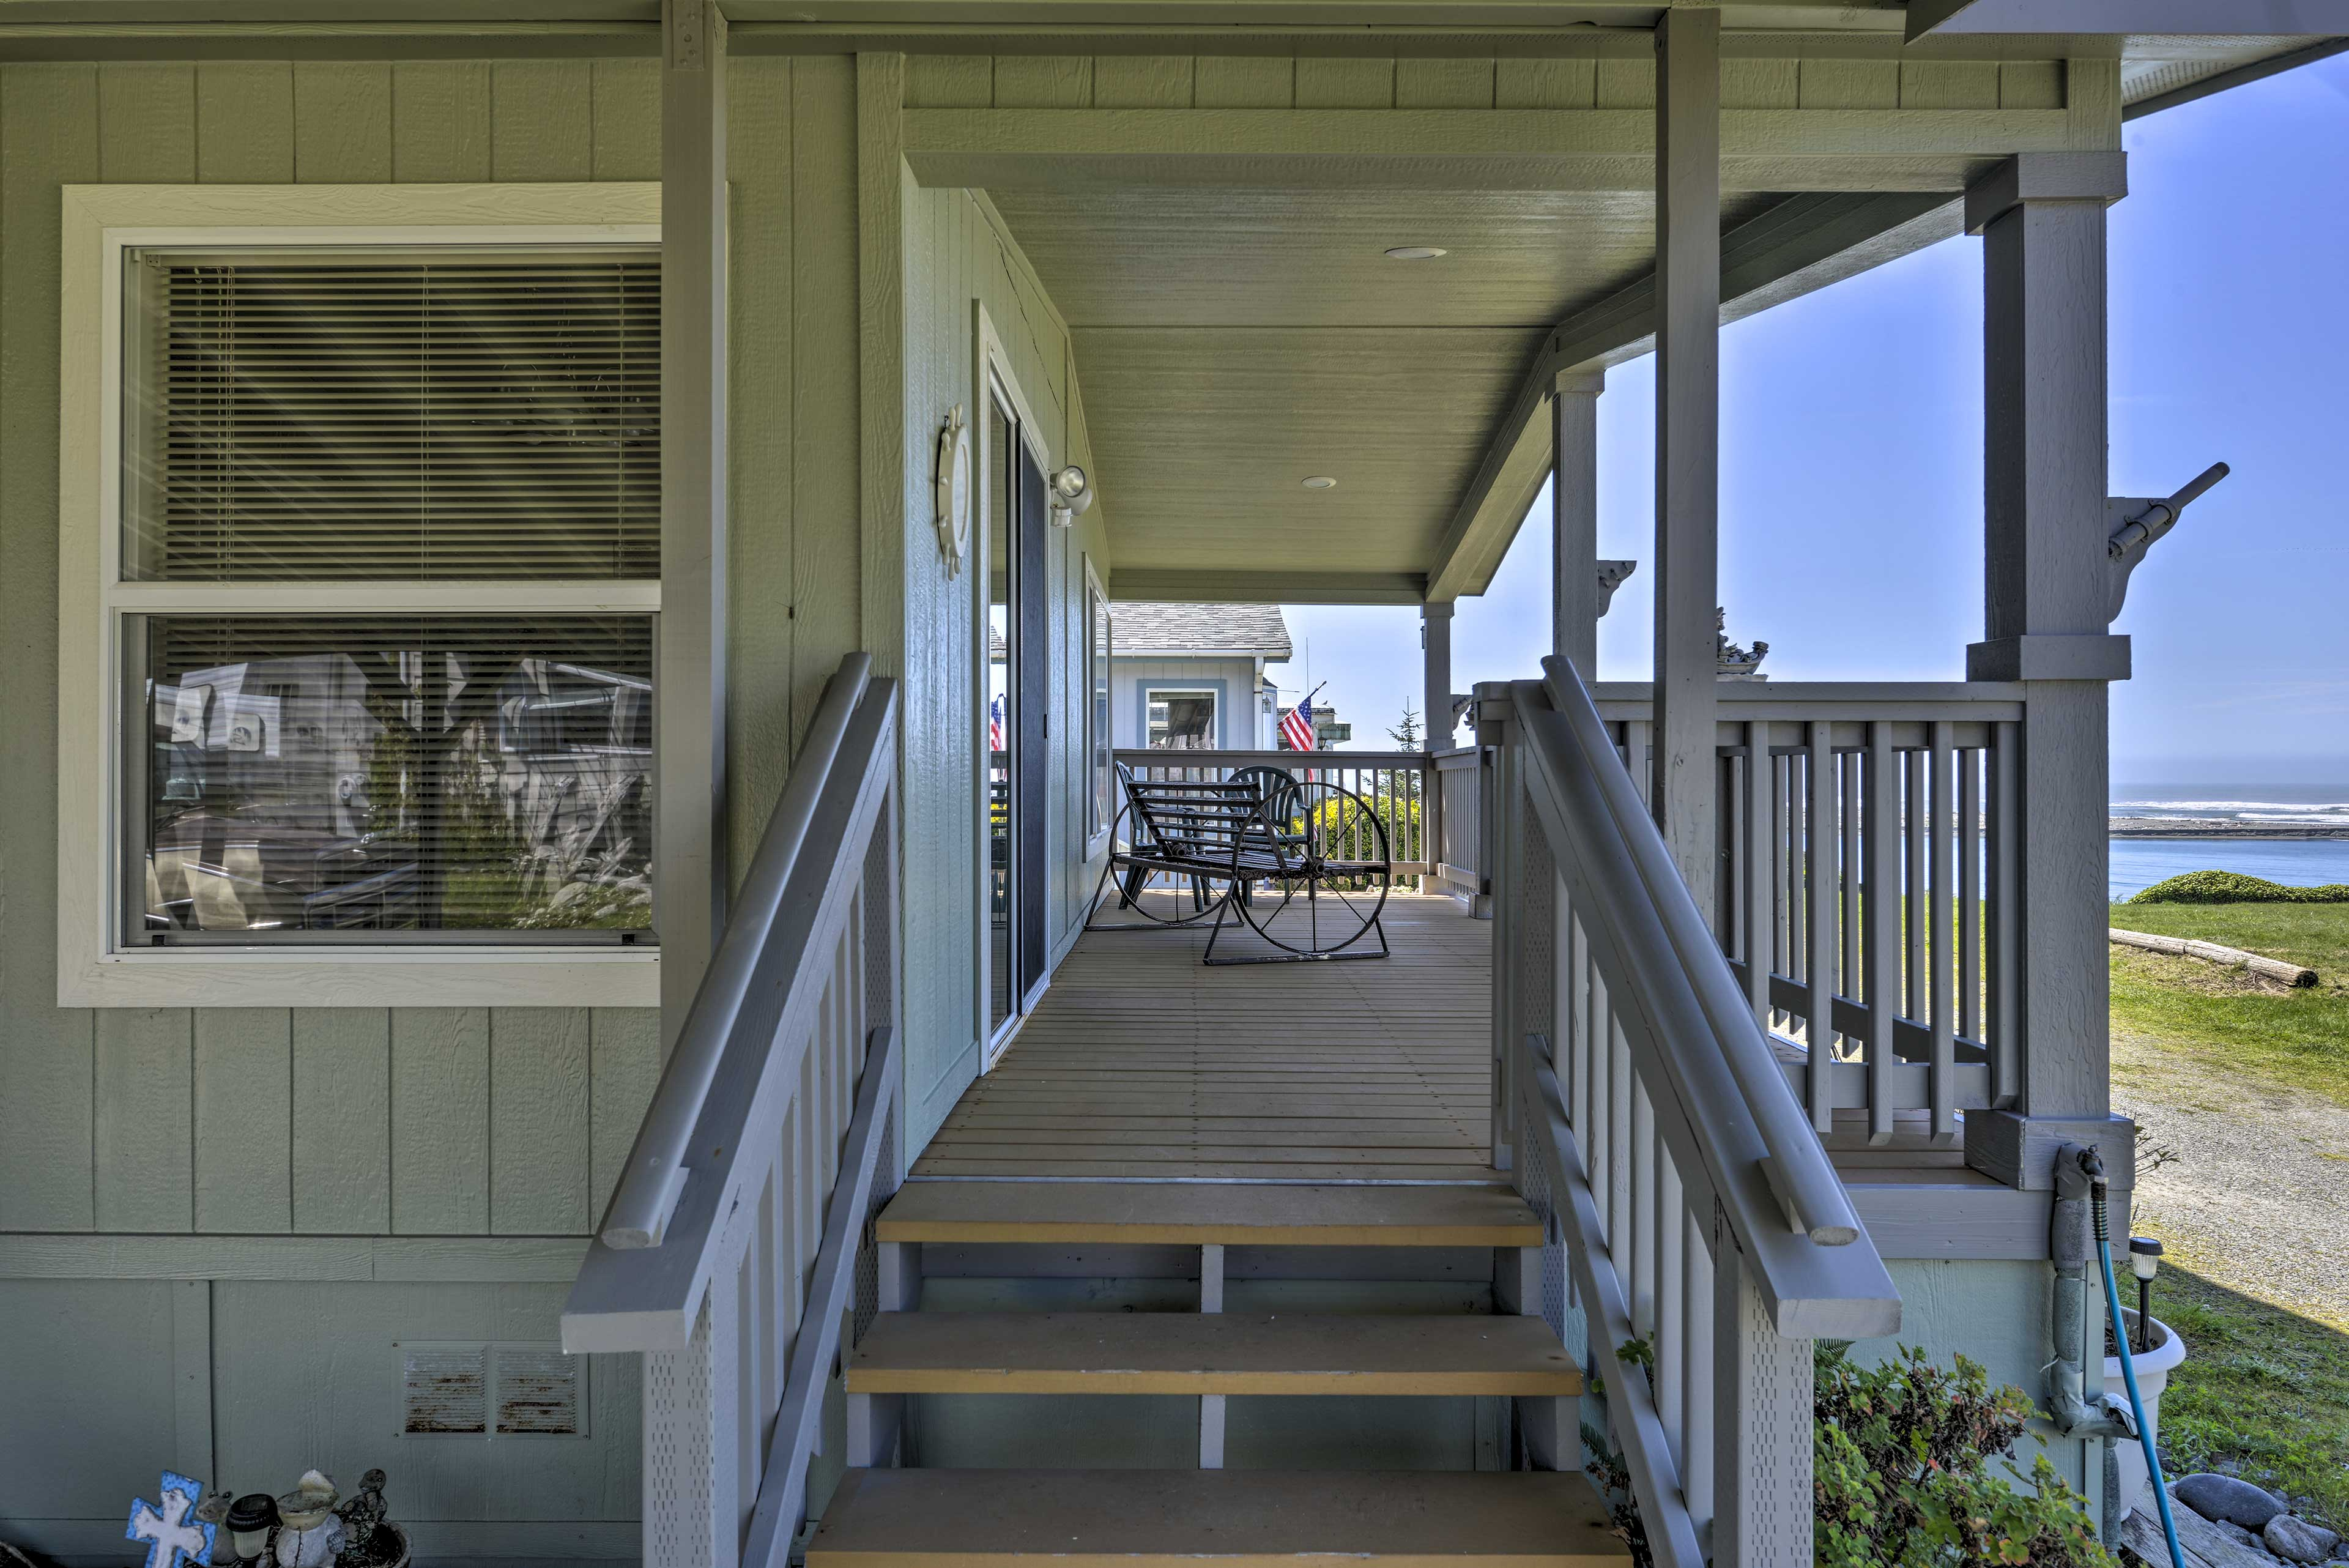 The spacious porch is an ideal place to unwind after a day of hiking.